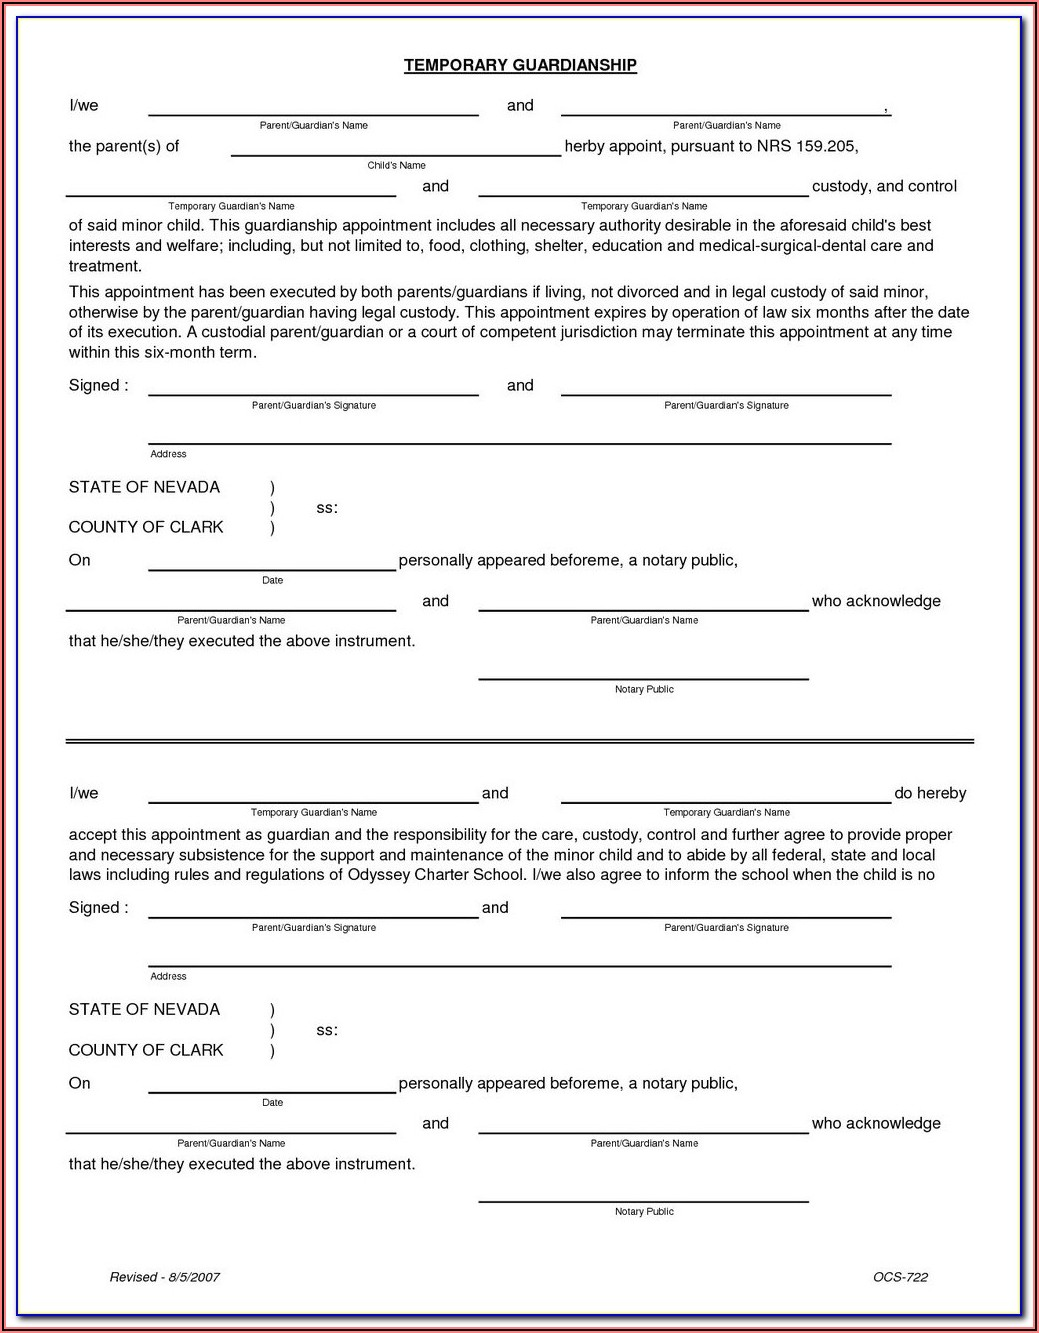 Indiana Form St 103